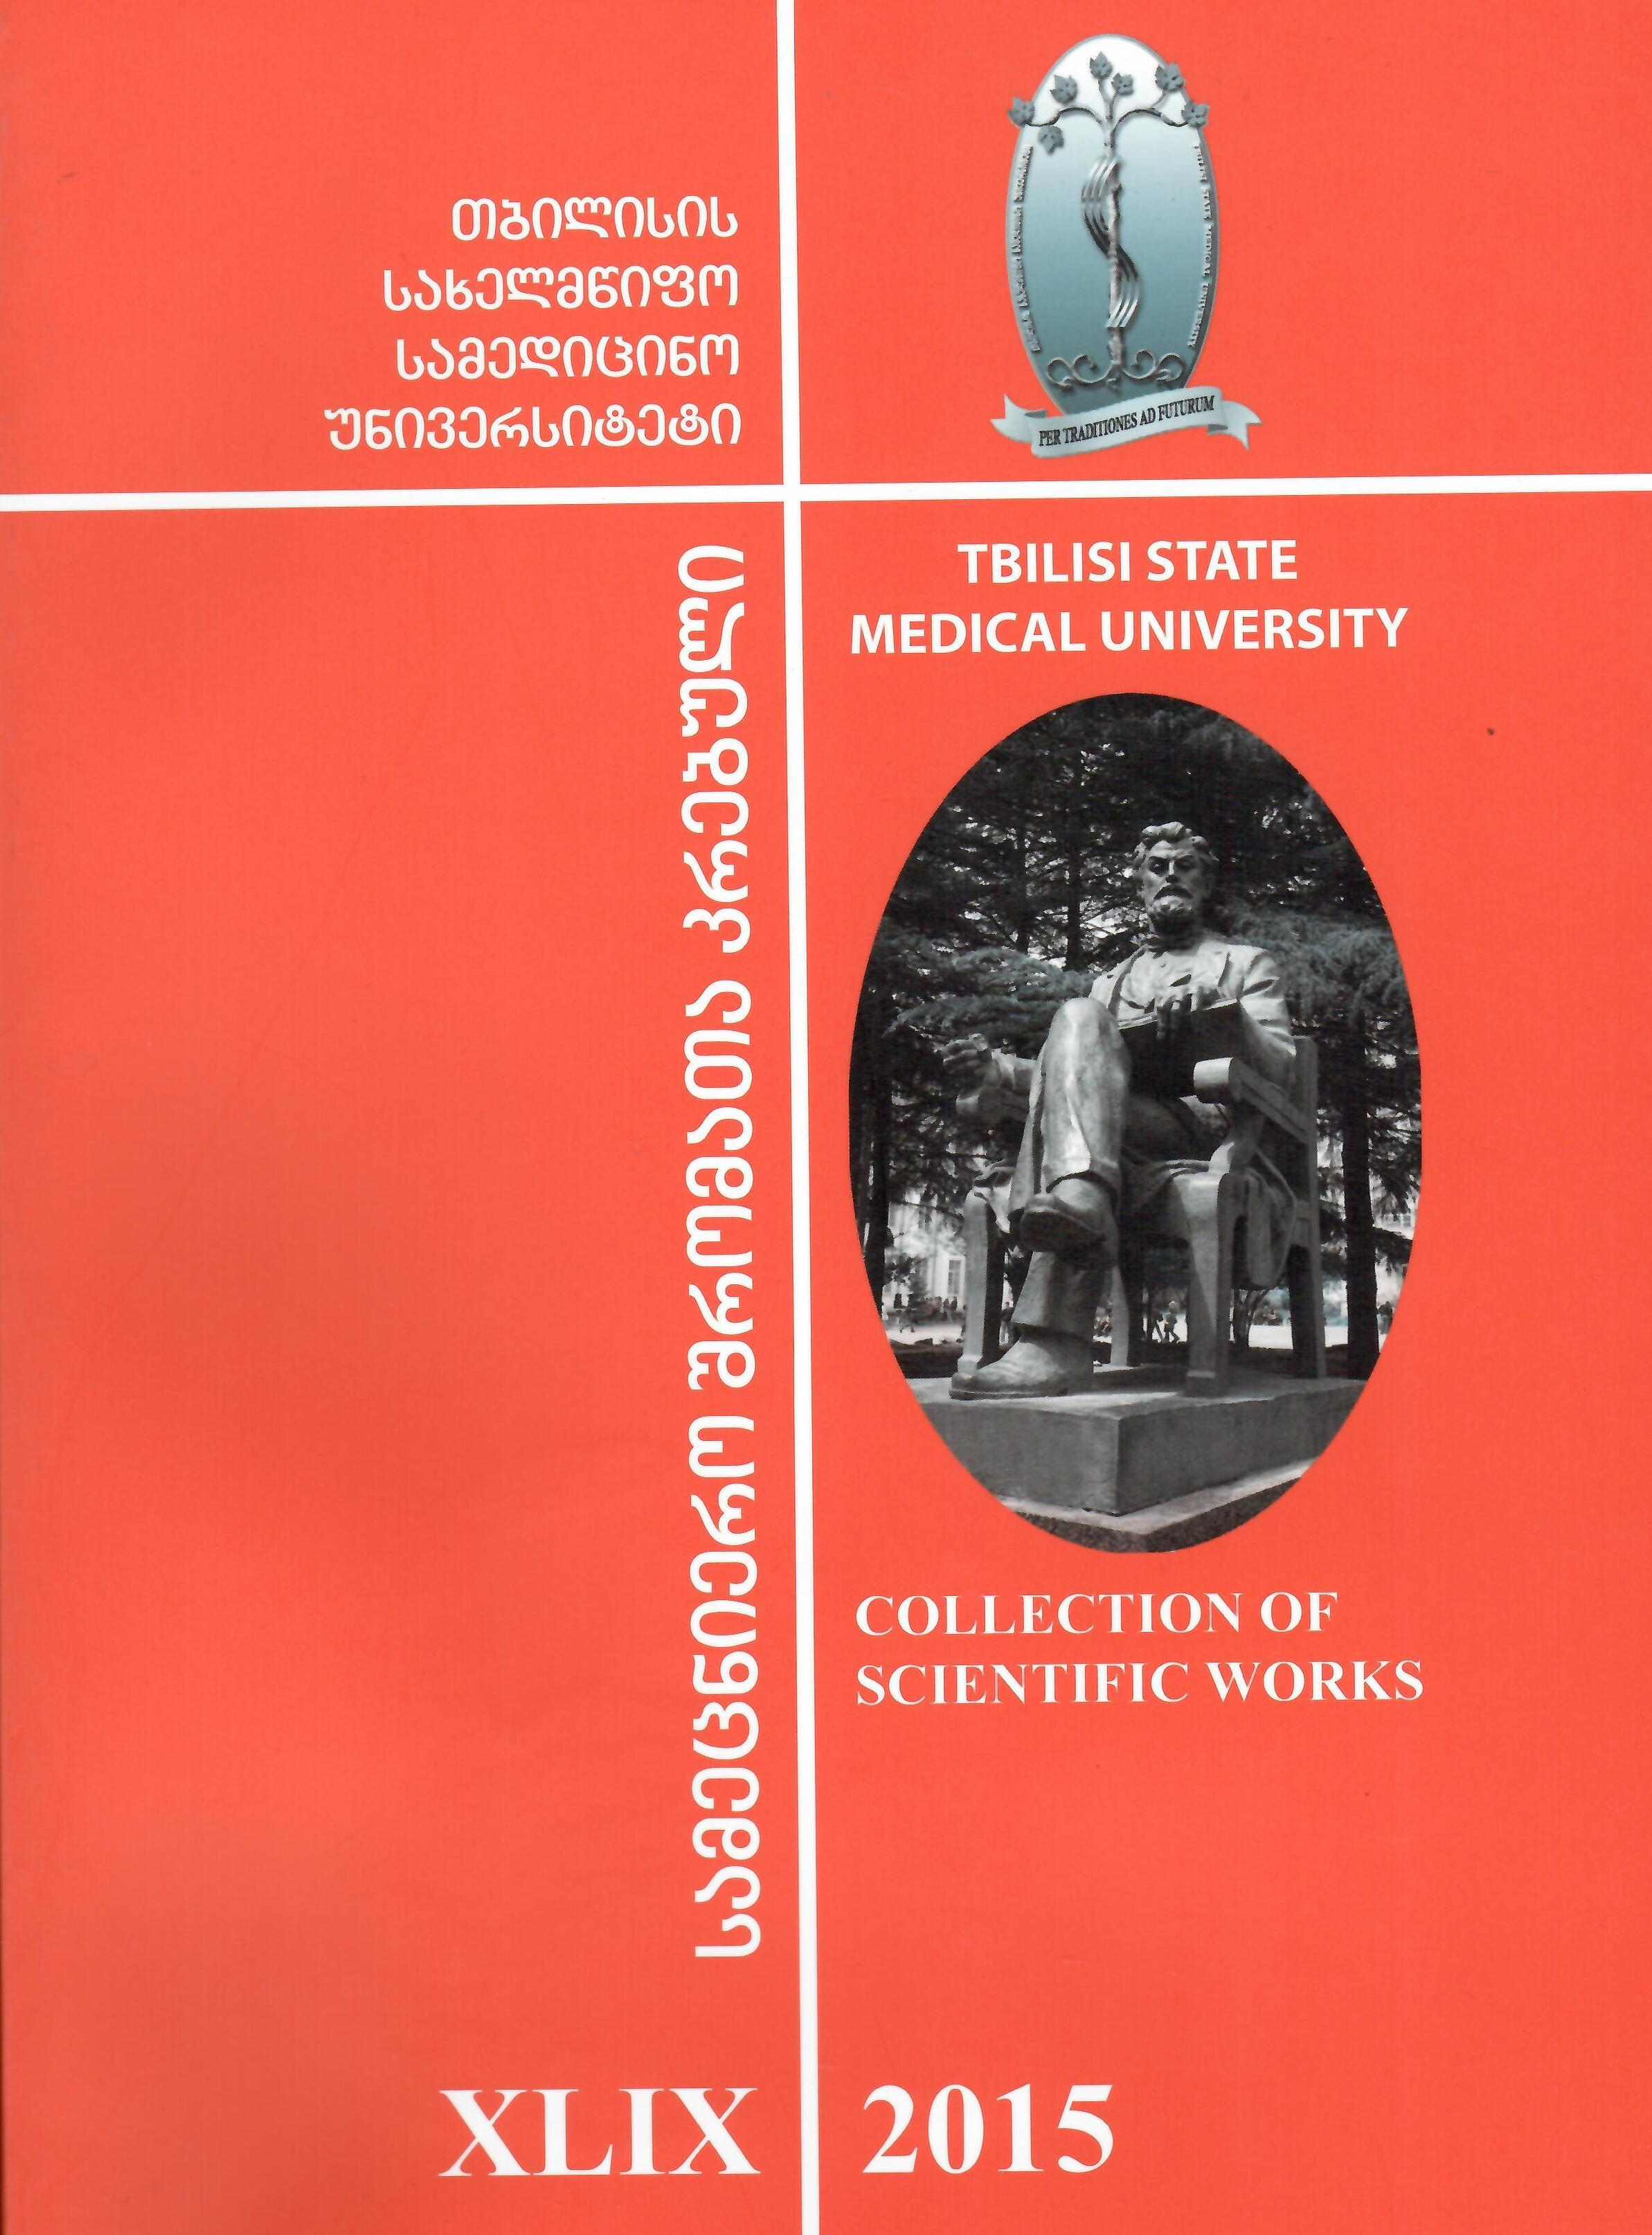 View Vol. 49 (2015): TSMU COLLECTION OF SCIENTIFIC WORKS